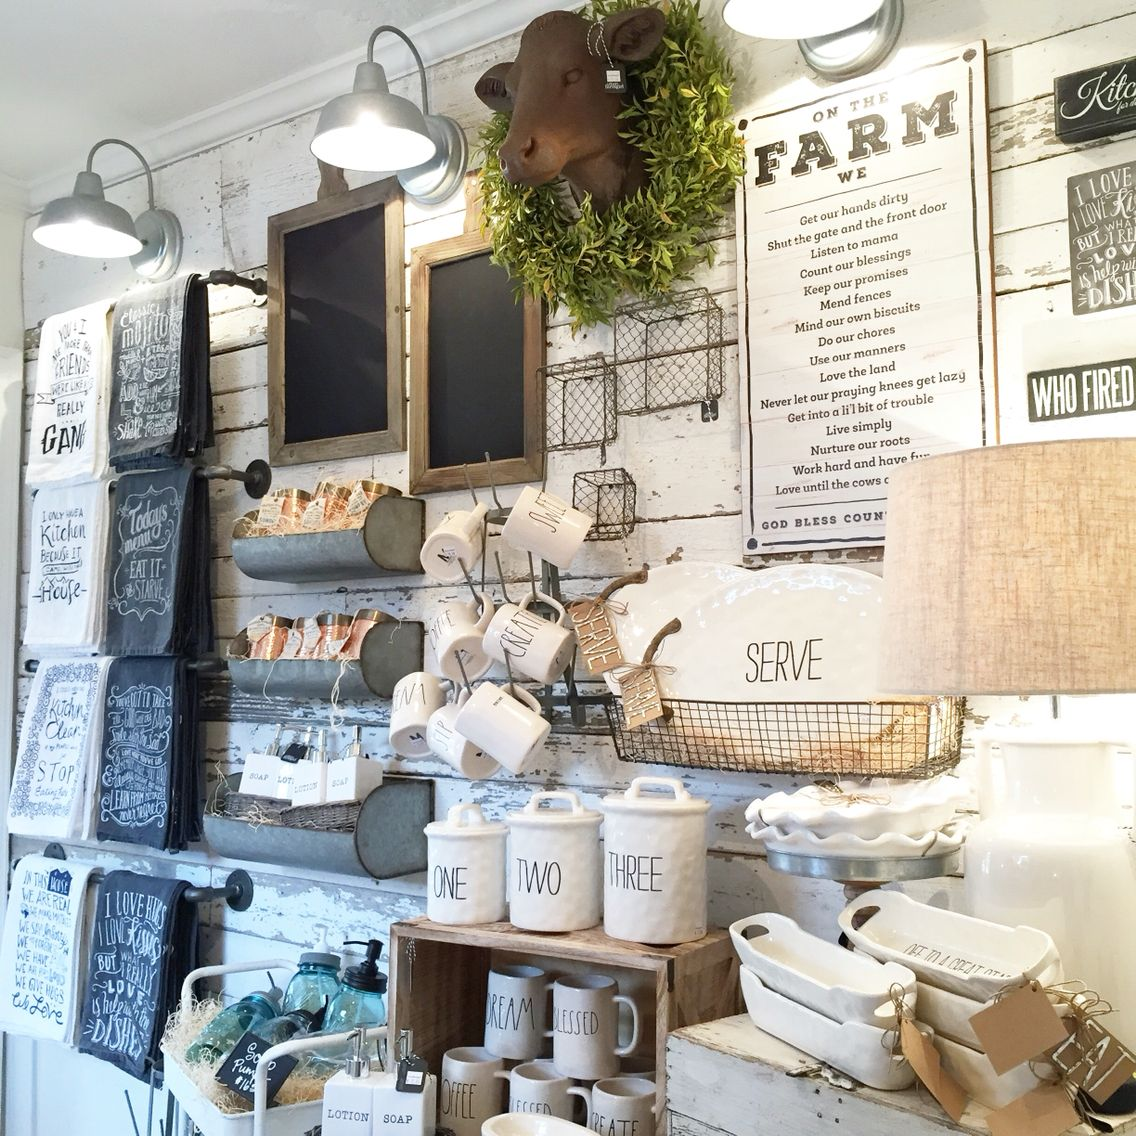 Kitchen Display Urban Farmgirl Kitchen Display March 2016 Urban Farmgirl My